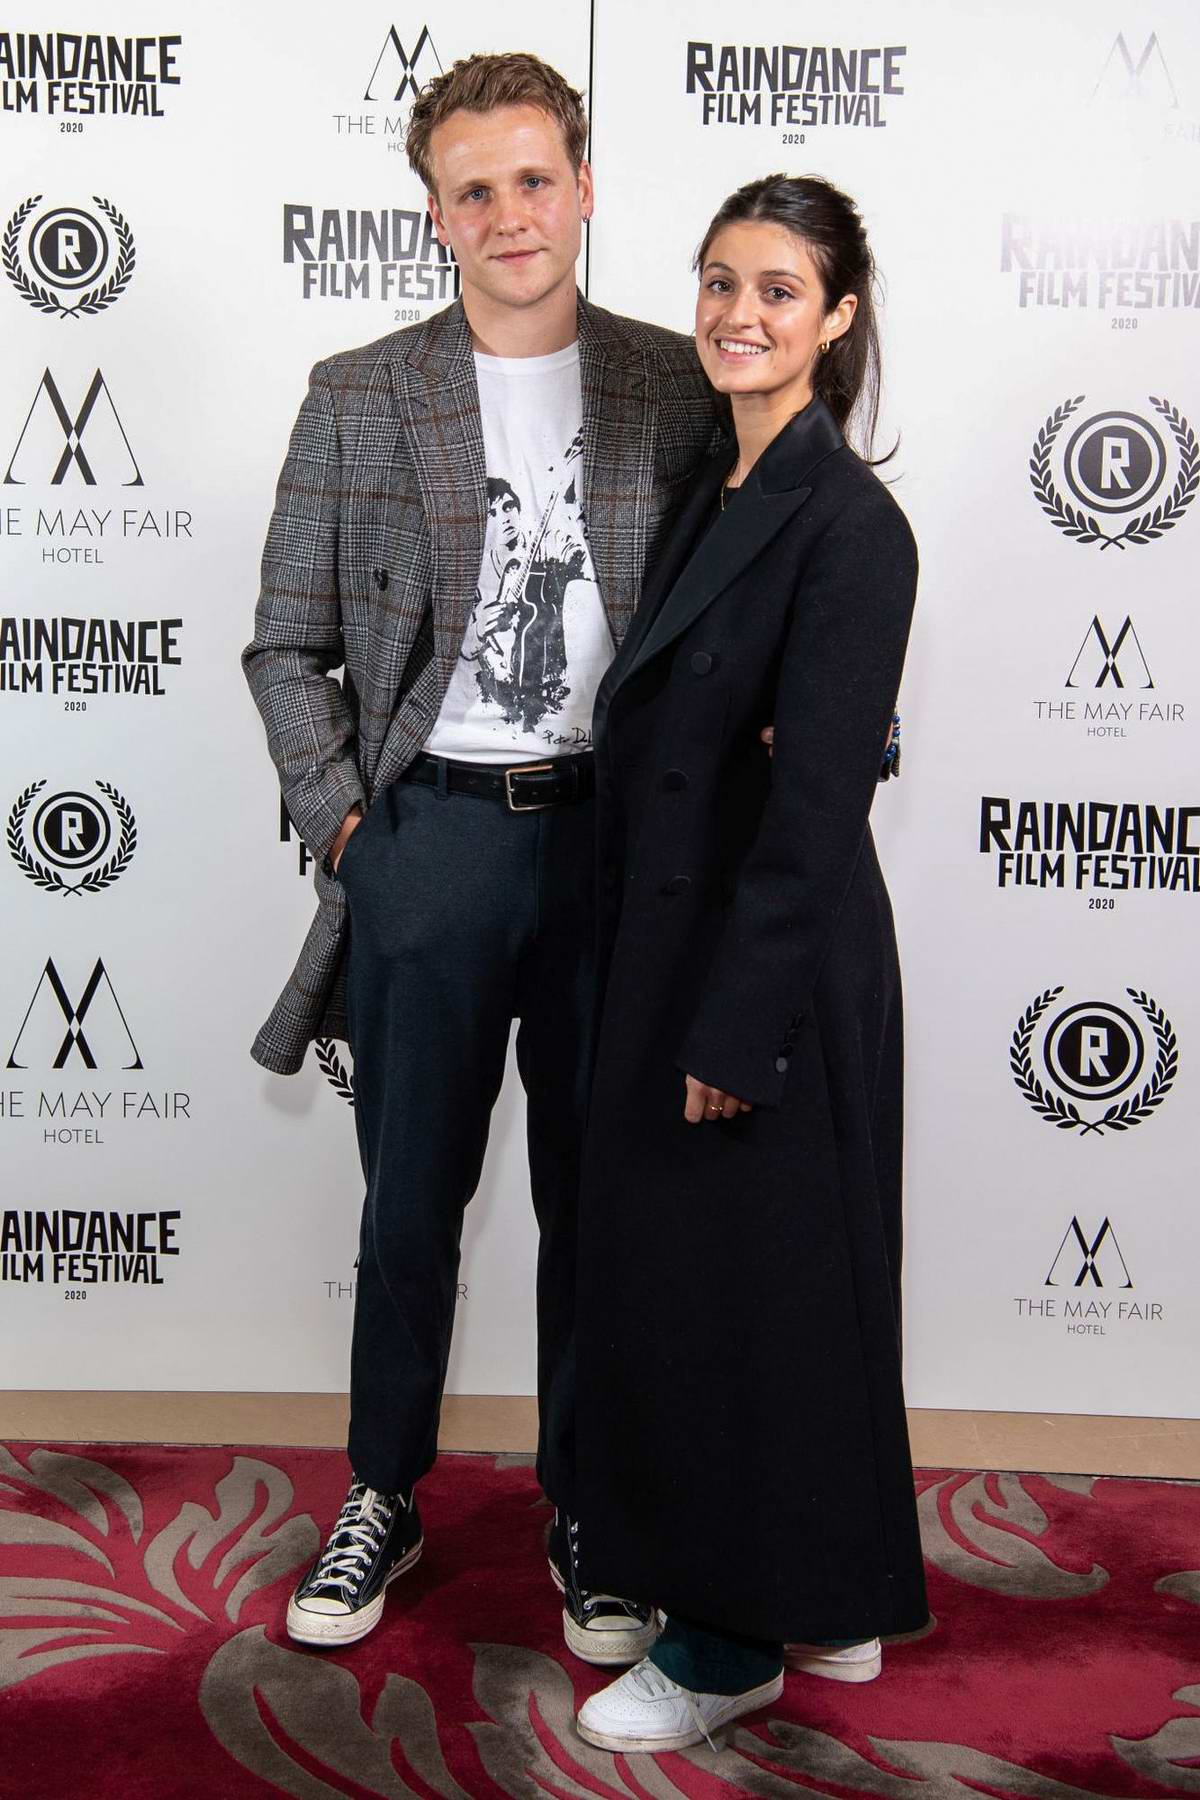 Anya Chalotra attends the 'Stardust' Premiere during 2020 Raindance Film Festival in London, UK